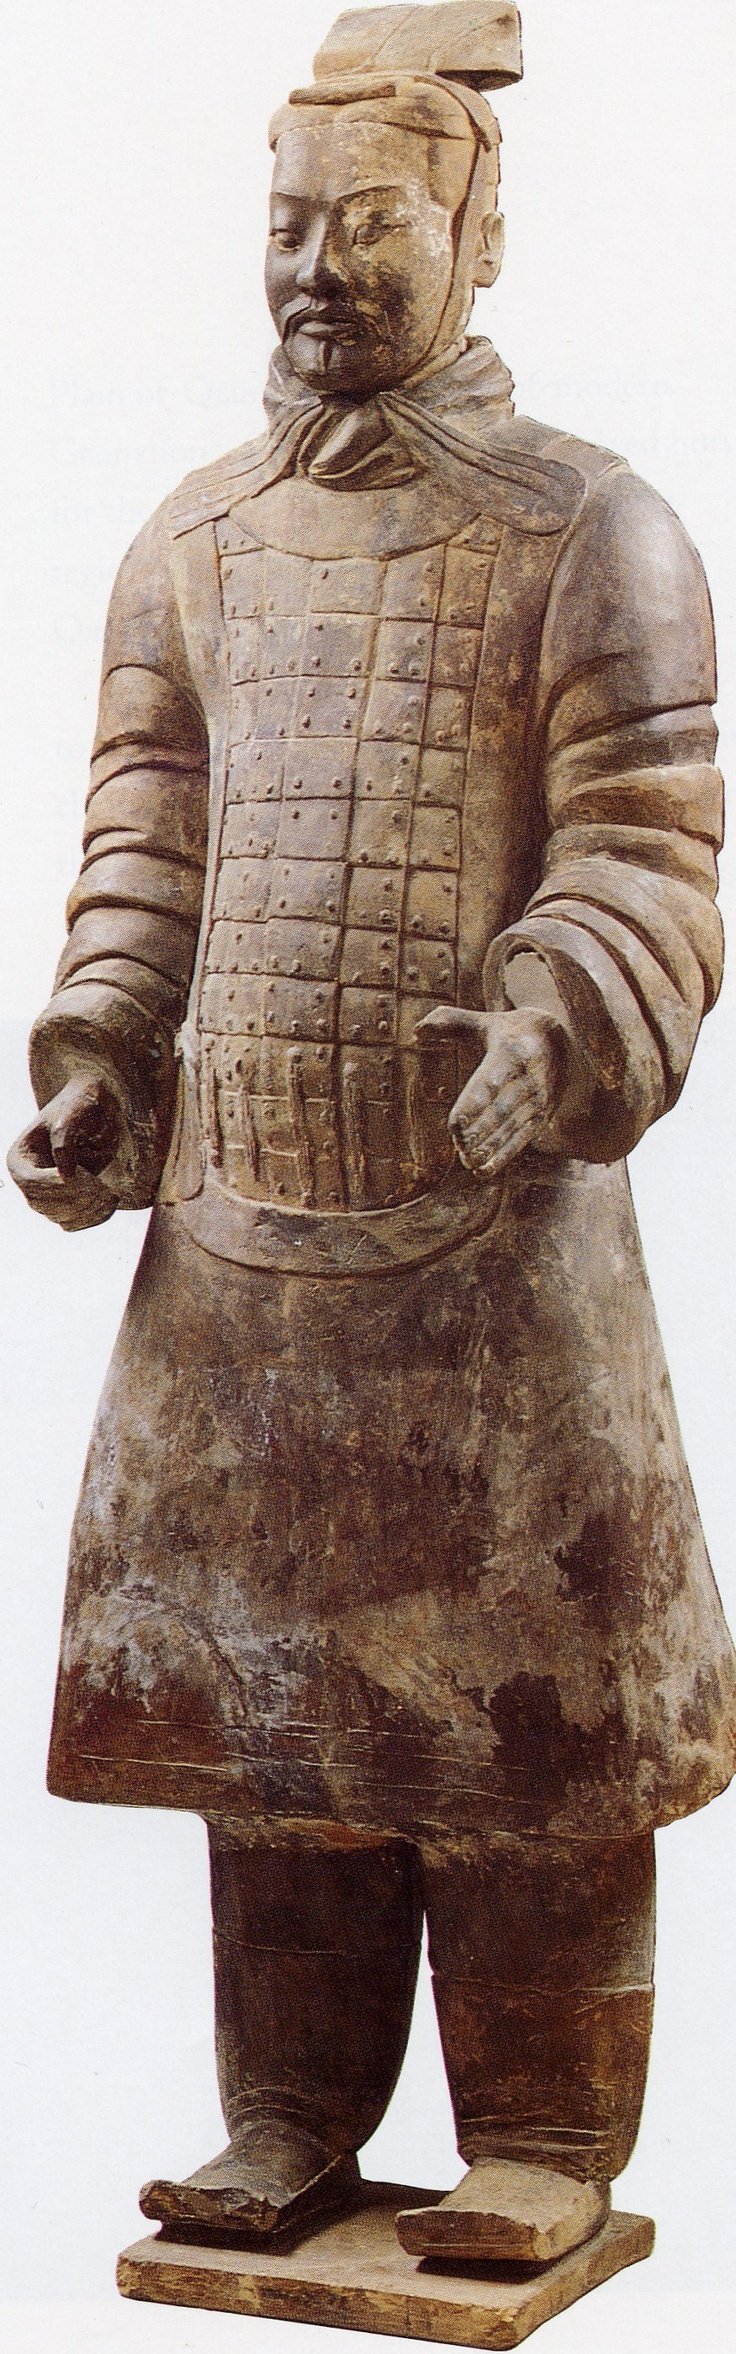 "Pottery Figure of Military Office, H: 71.3"" One of the terracotta warriors"